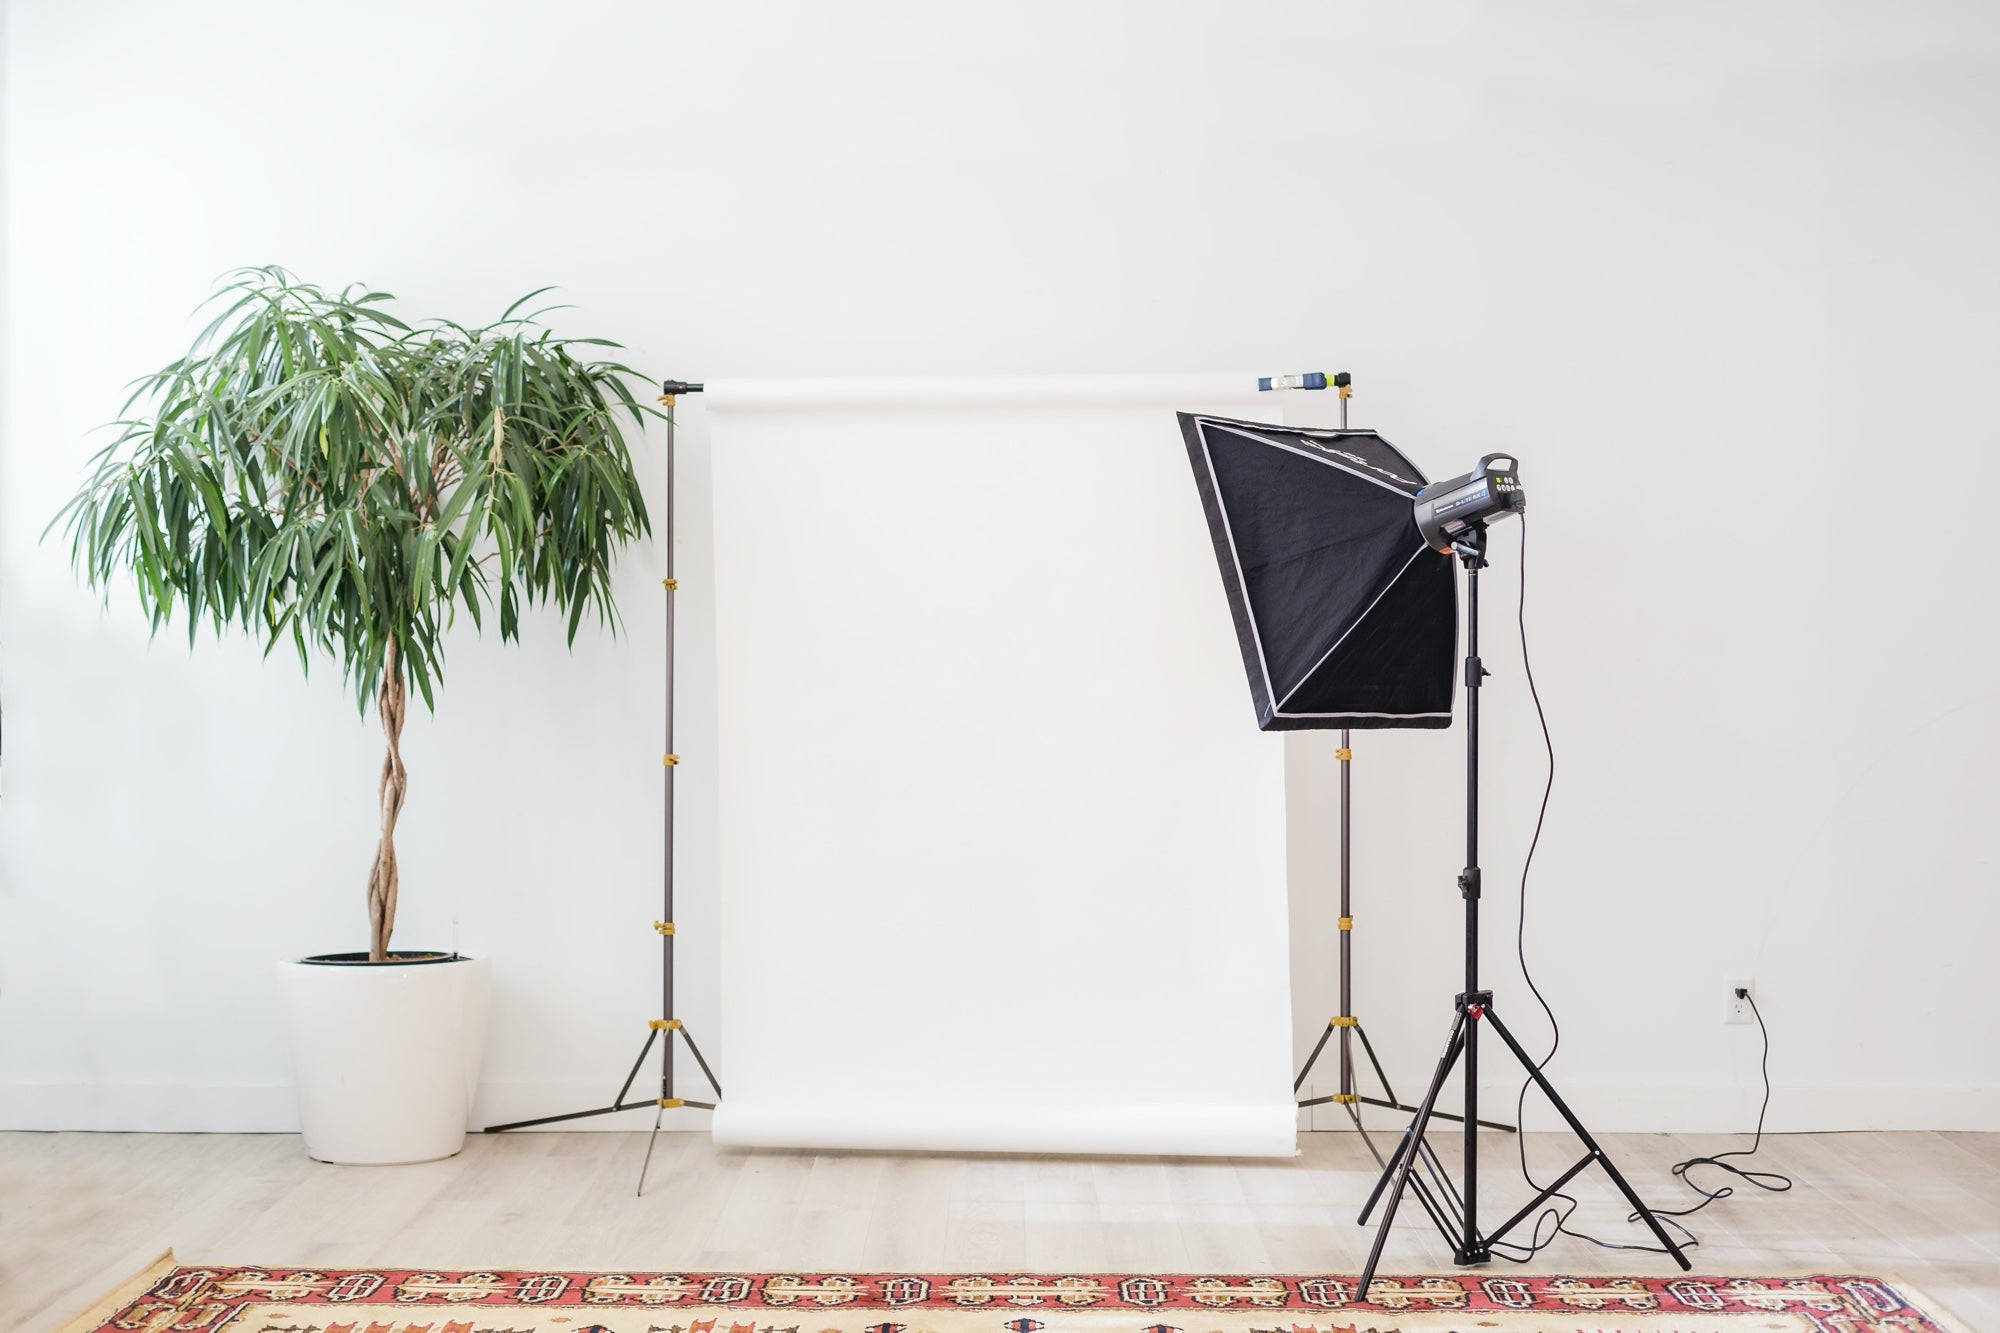 Home photography studio set up with lights, a backdrop, and a plant